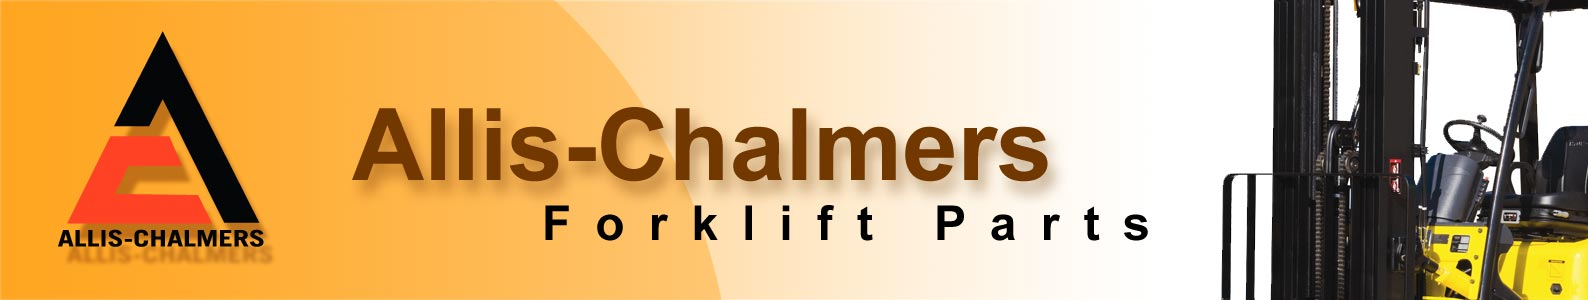 Allis Chalmers Forklift Parts